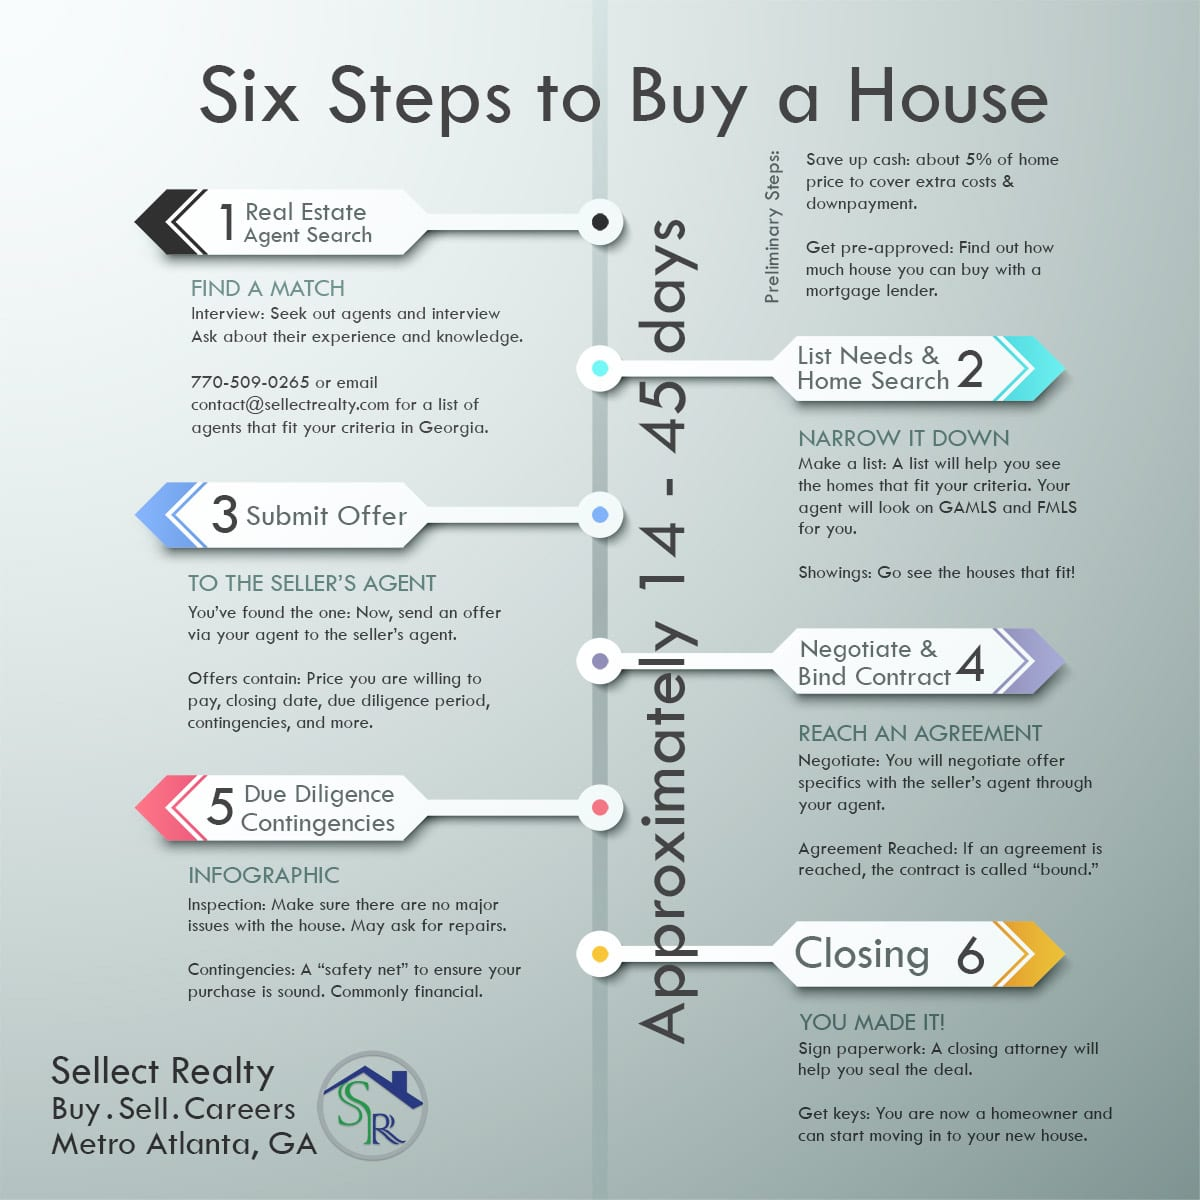 Infographic of the steps to buy a house in Georgia.